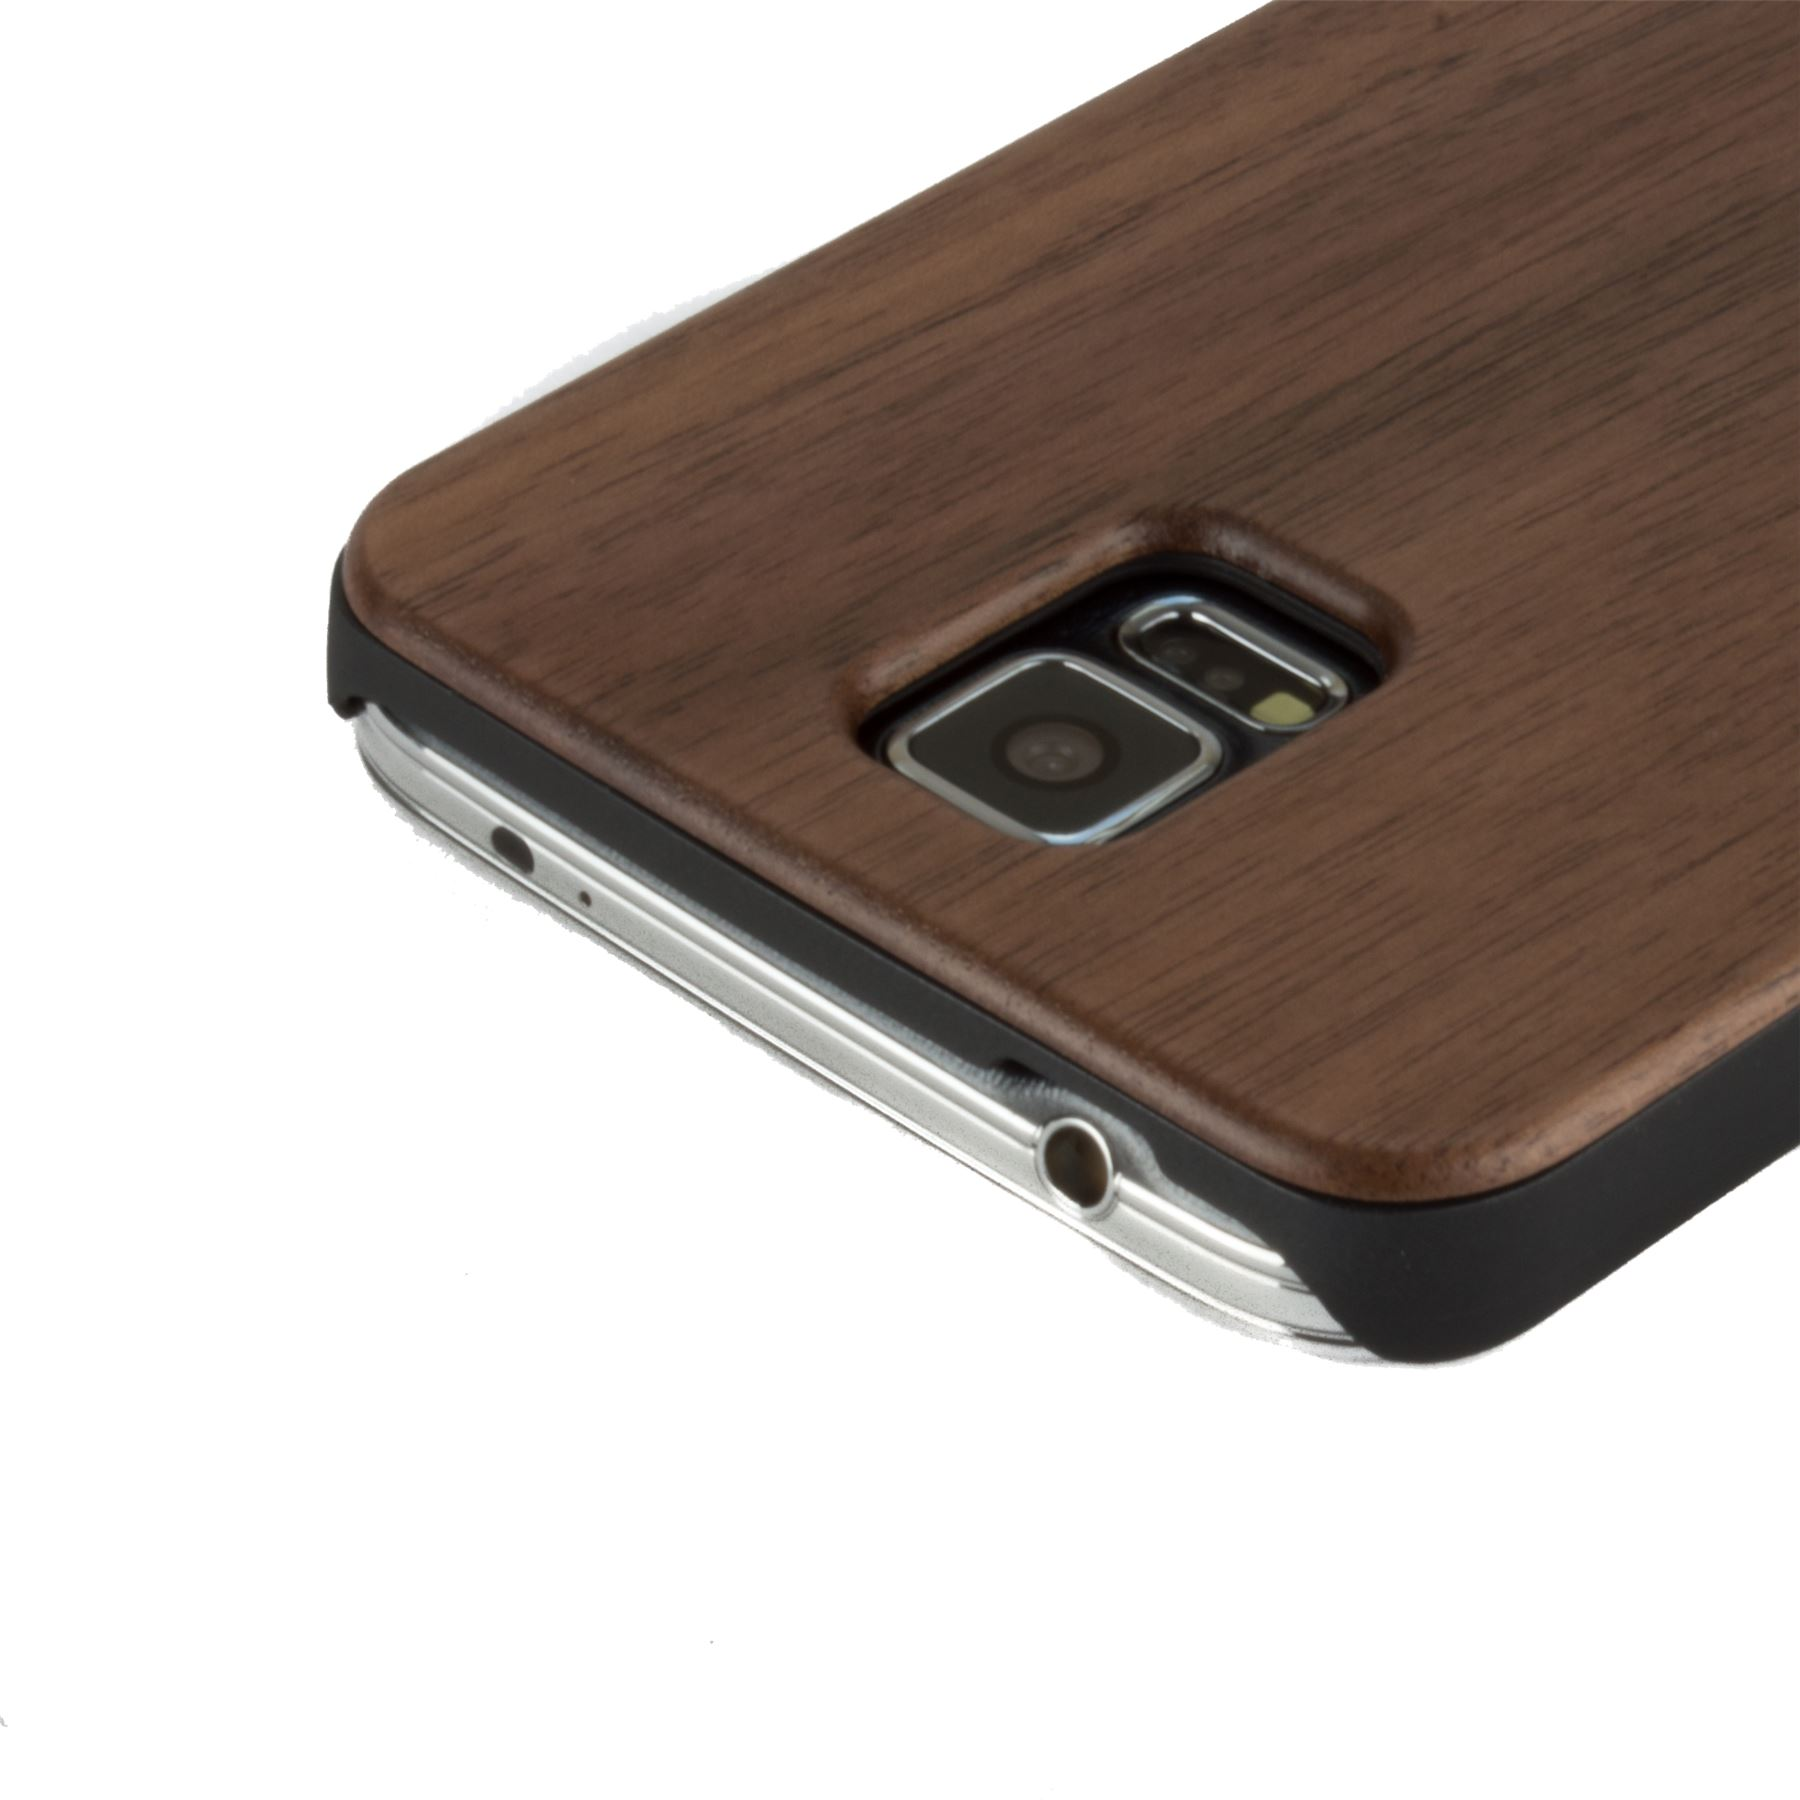 wholesale dealer d37ff 6054c Details about Snakehive Samsung Galaxy S5 Natural Wooden Real Wood Grain  Back Case Cover